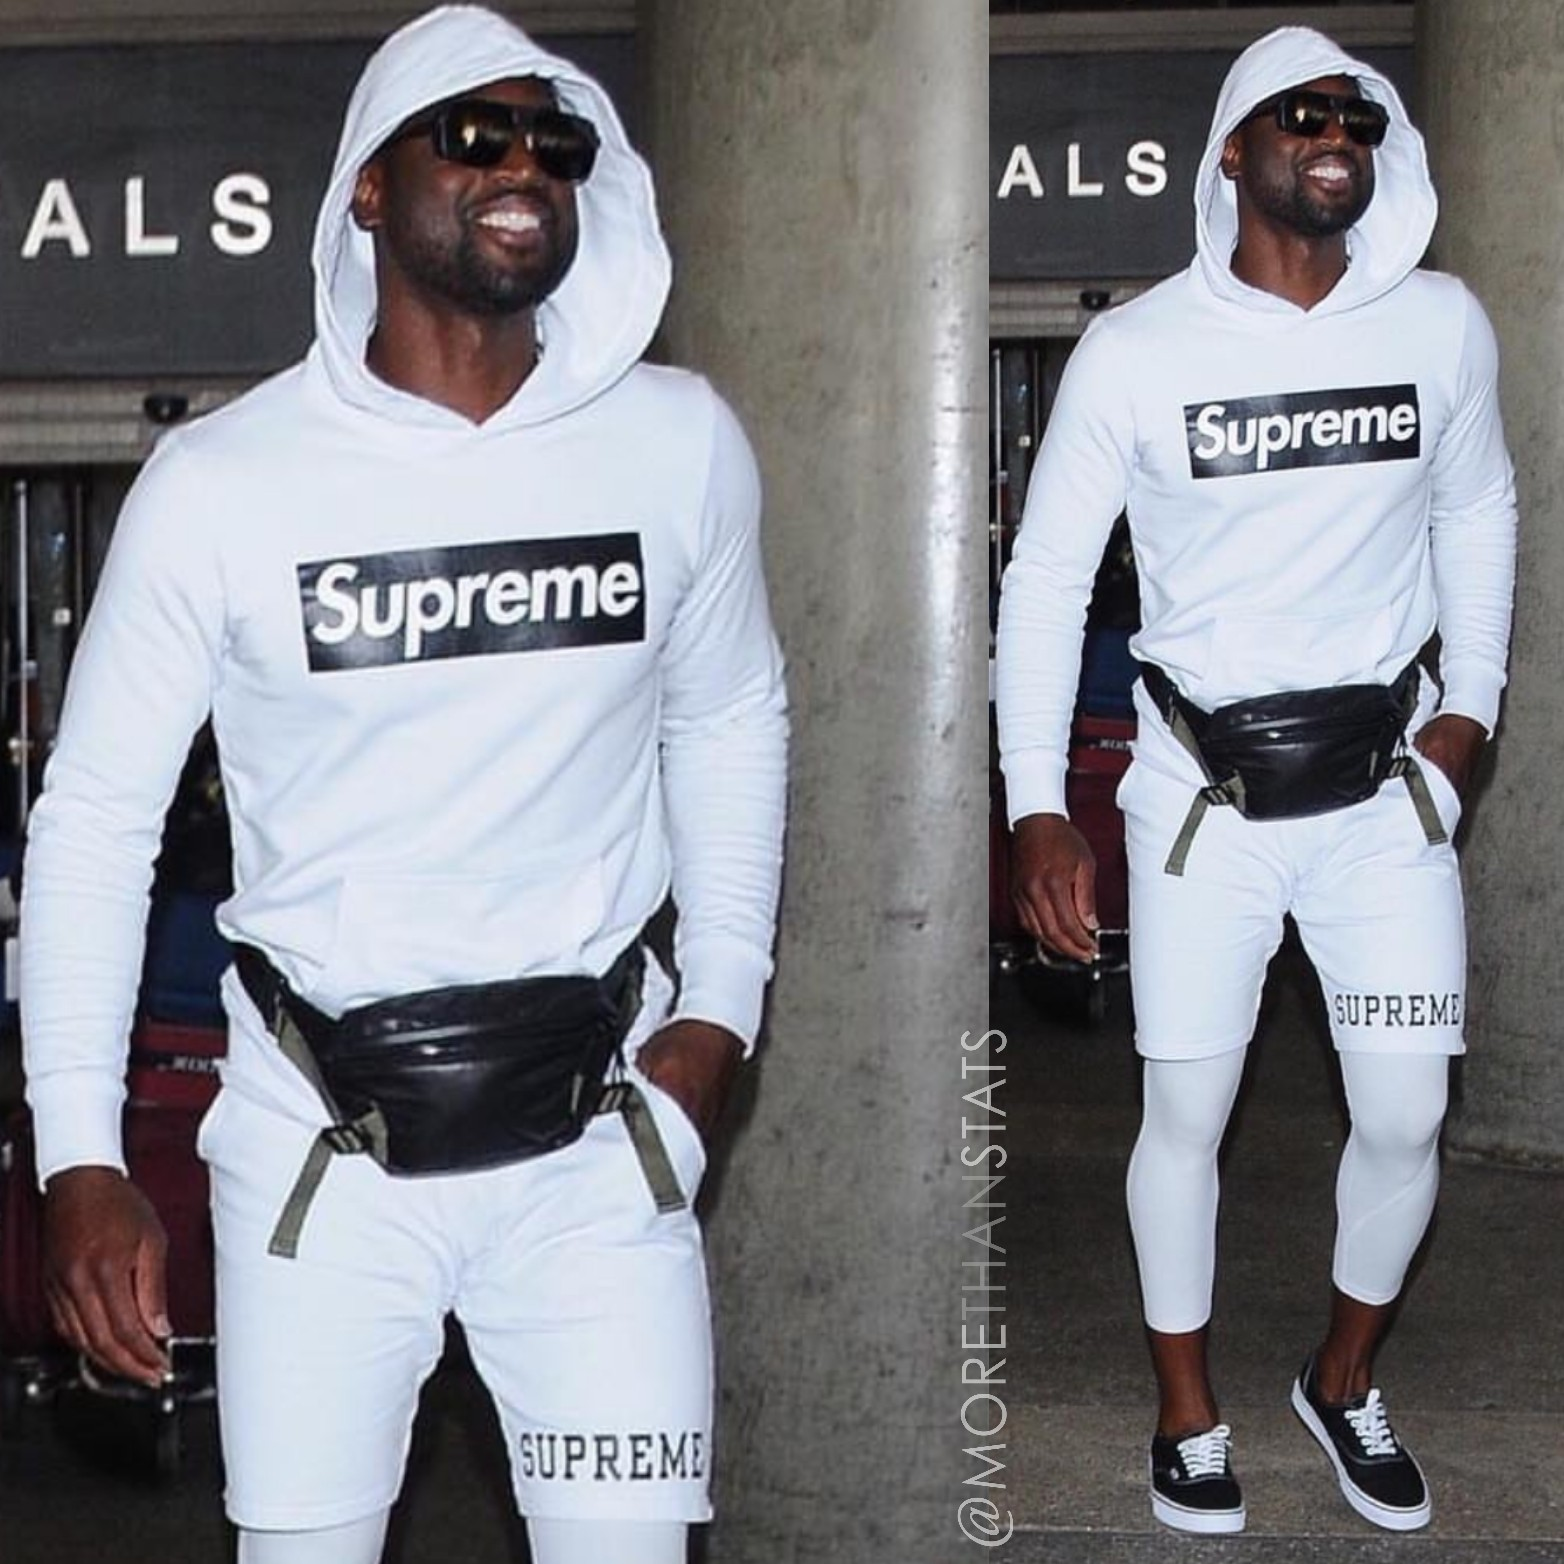 Dwyane Wade's LAX Airport Supreme Hoodie and Shorts